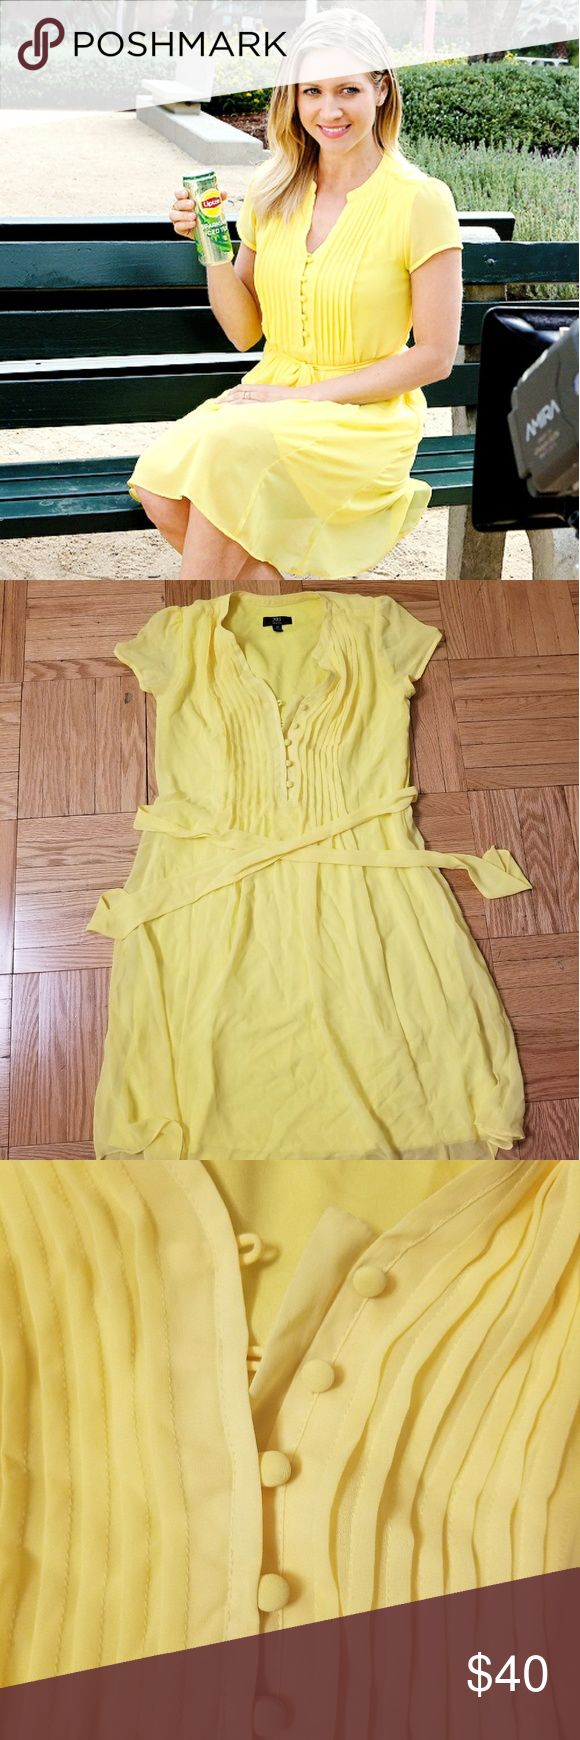 Brittany Snow's Actual Lipton Yellow Dress! An adorable, bright yellow sundress that Brittany Snow wore during her Lipton Sparkling Iced Tea commercial a year ago.  My company worked on the shoot, so, yes, this is the actual dress.  Only been worn once and in great condition, minus a few wrinkles from being in my closet.  Super cute and great for summer! JBS Petite Dresses Mini